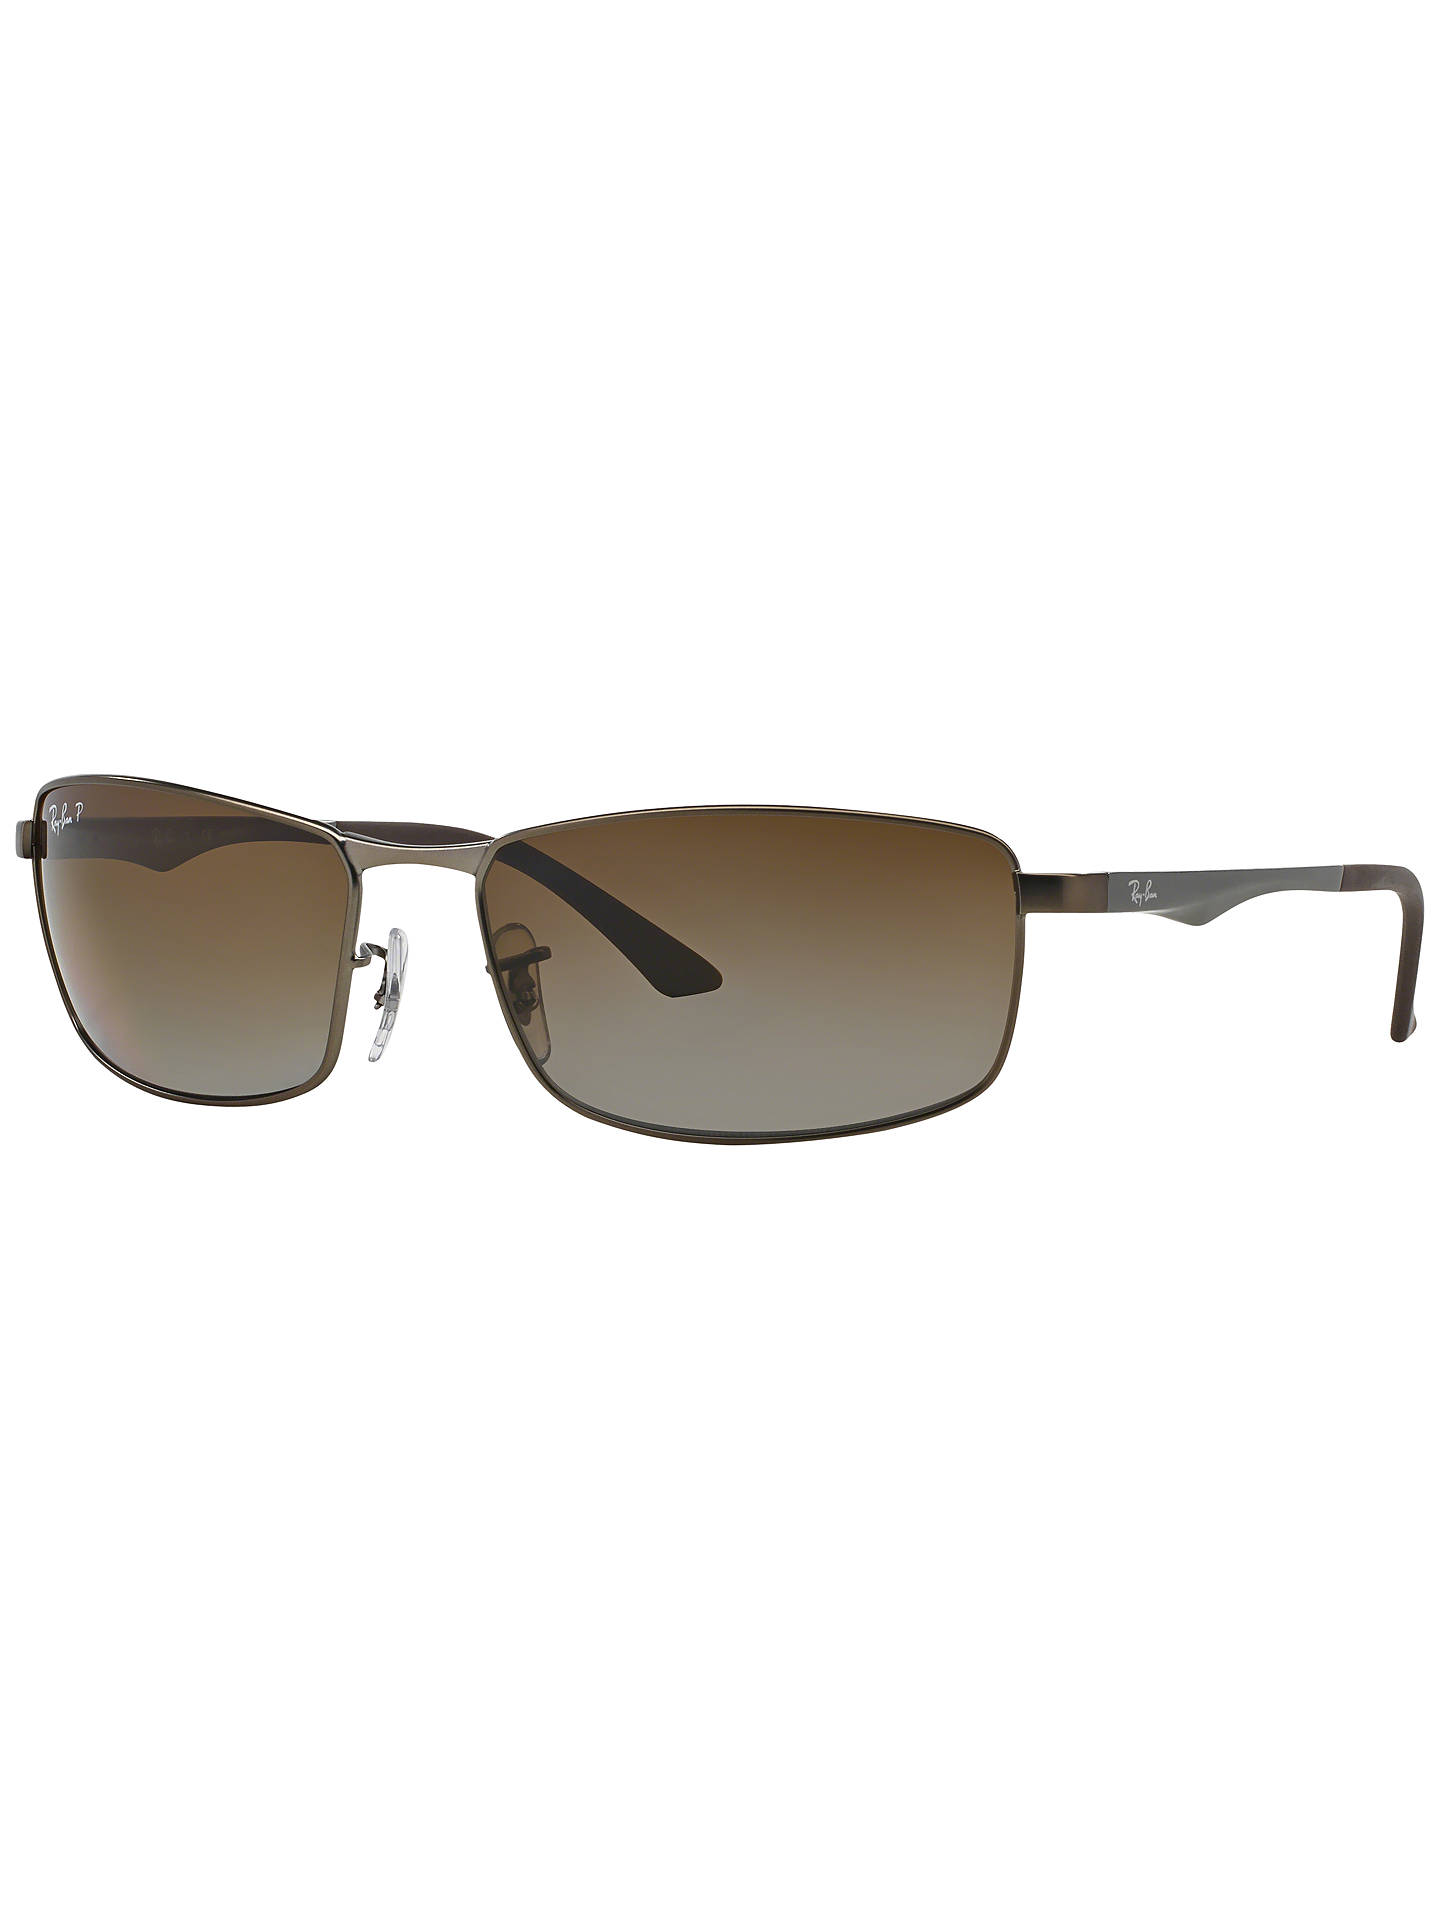 BuyRay-Ban RB3498 Active Lifestyle Sunglasses, Matte Gunmetal Online at johnlewis.com